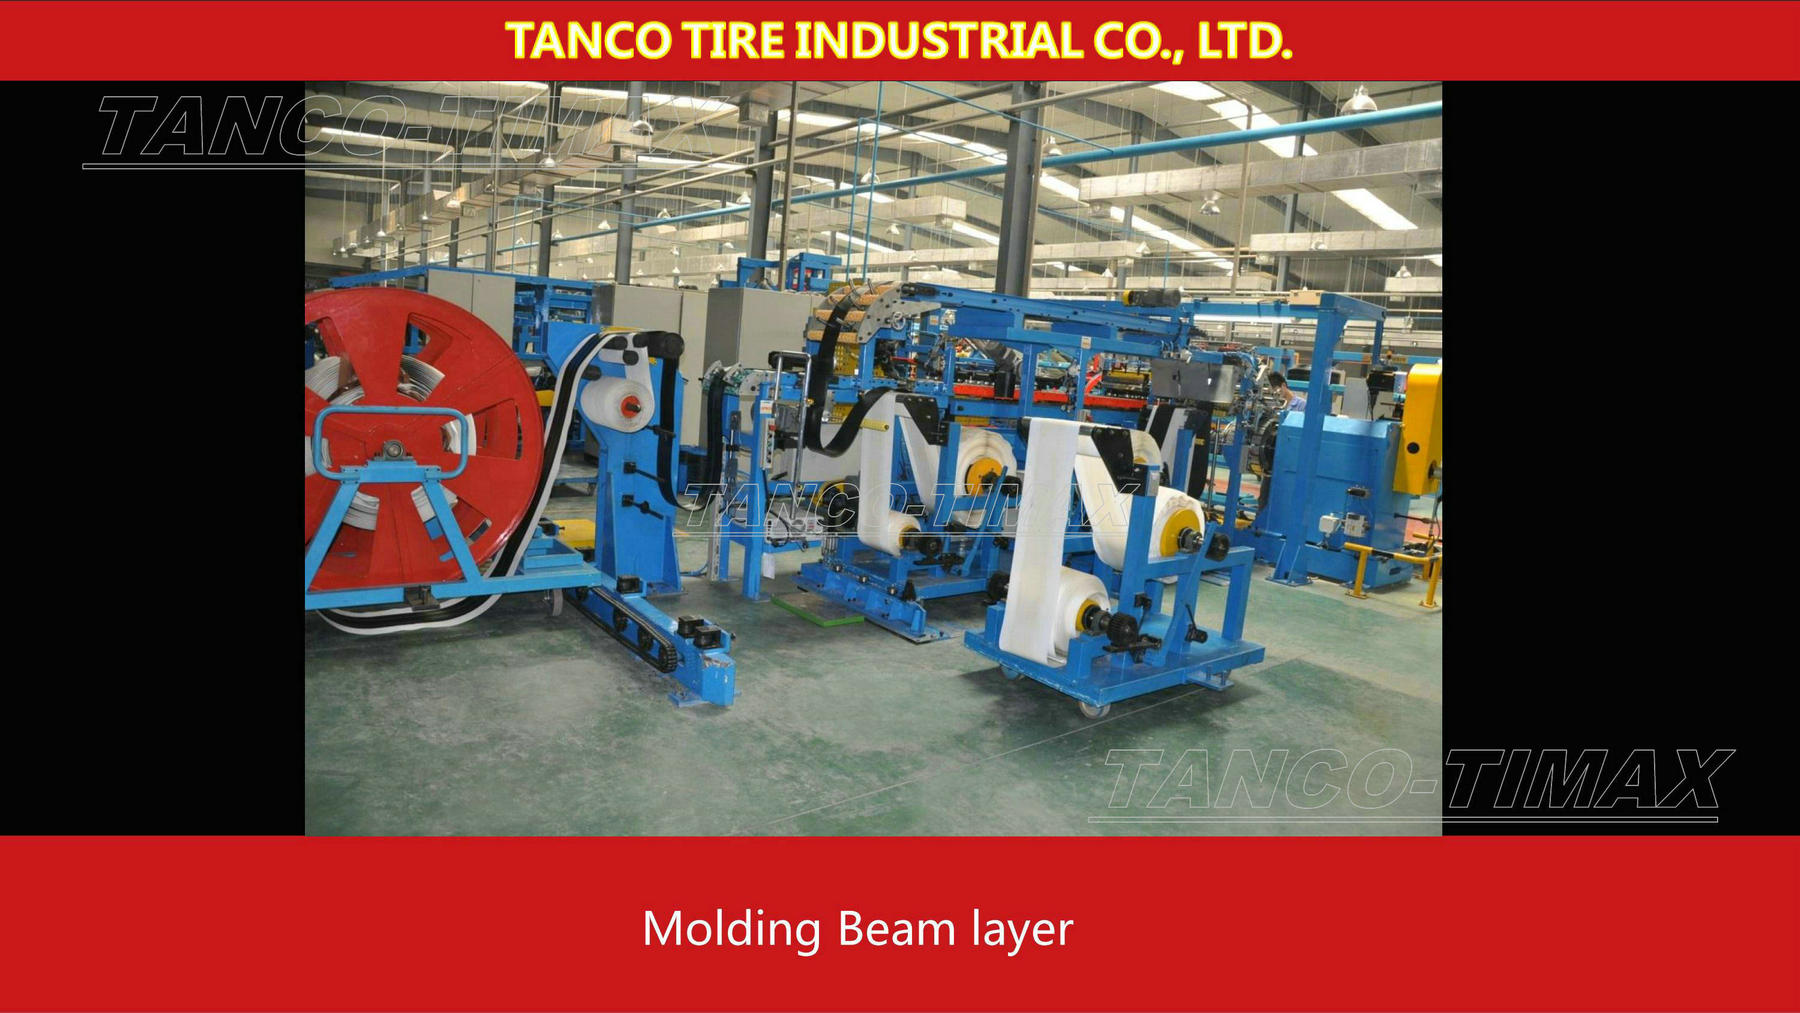 7. Molding beam layer